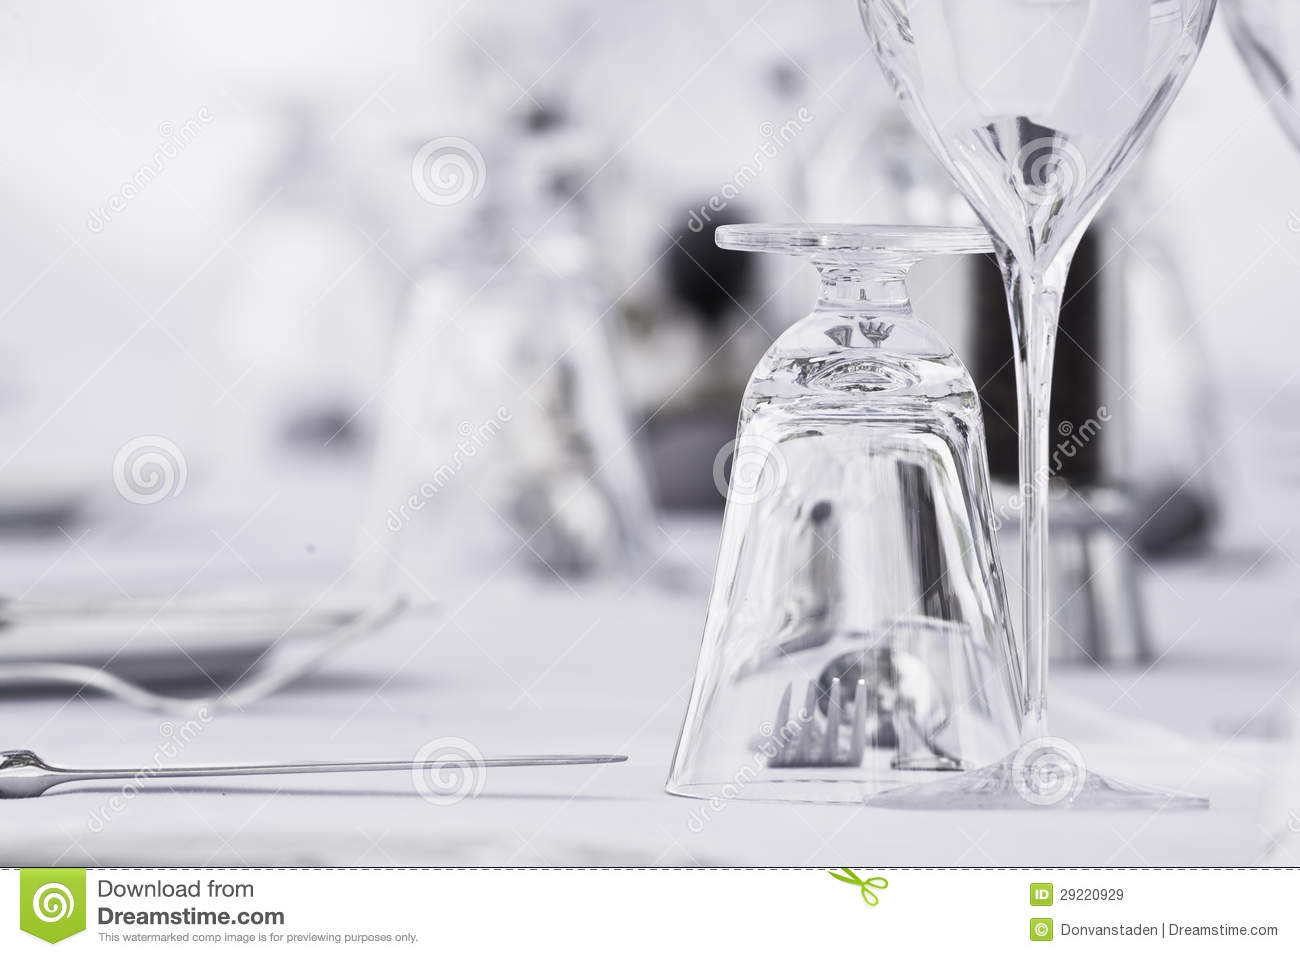 Fine dining table setting stock image image of breakfast 29220929 - Fine dining table layout ...